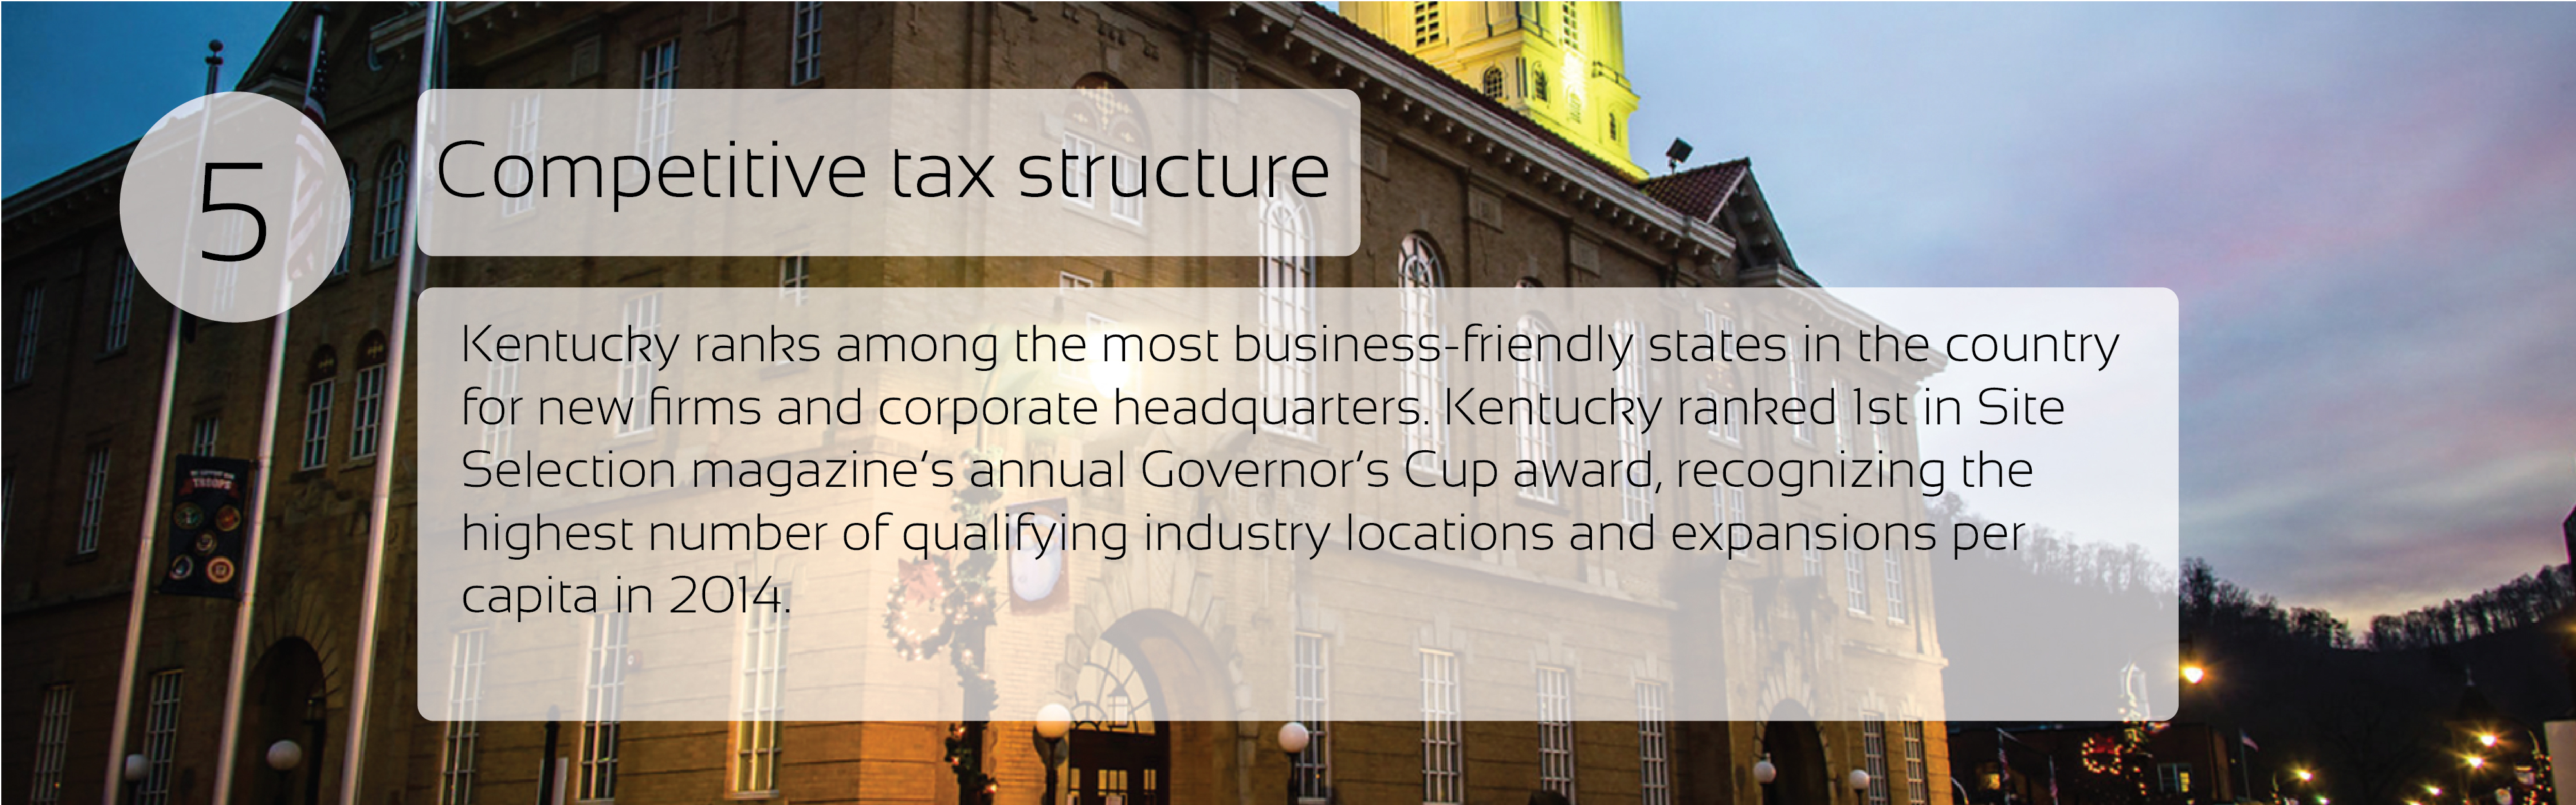 Competitive_Tax_Structure-05.jpg